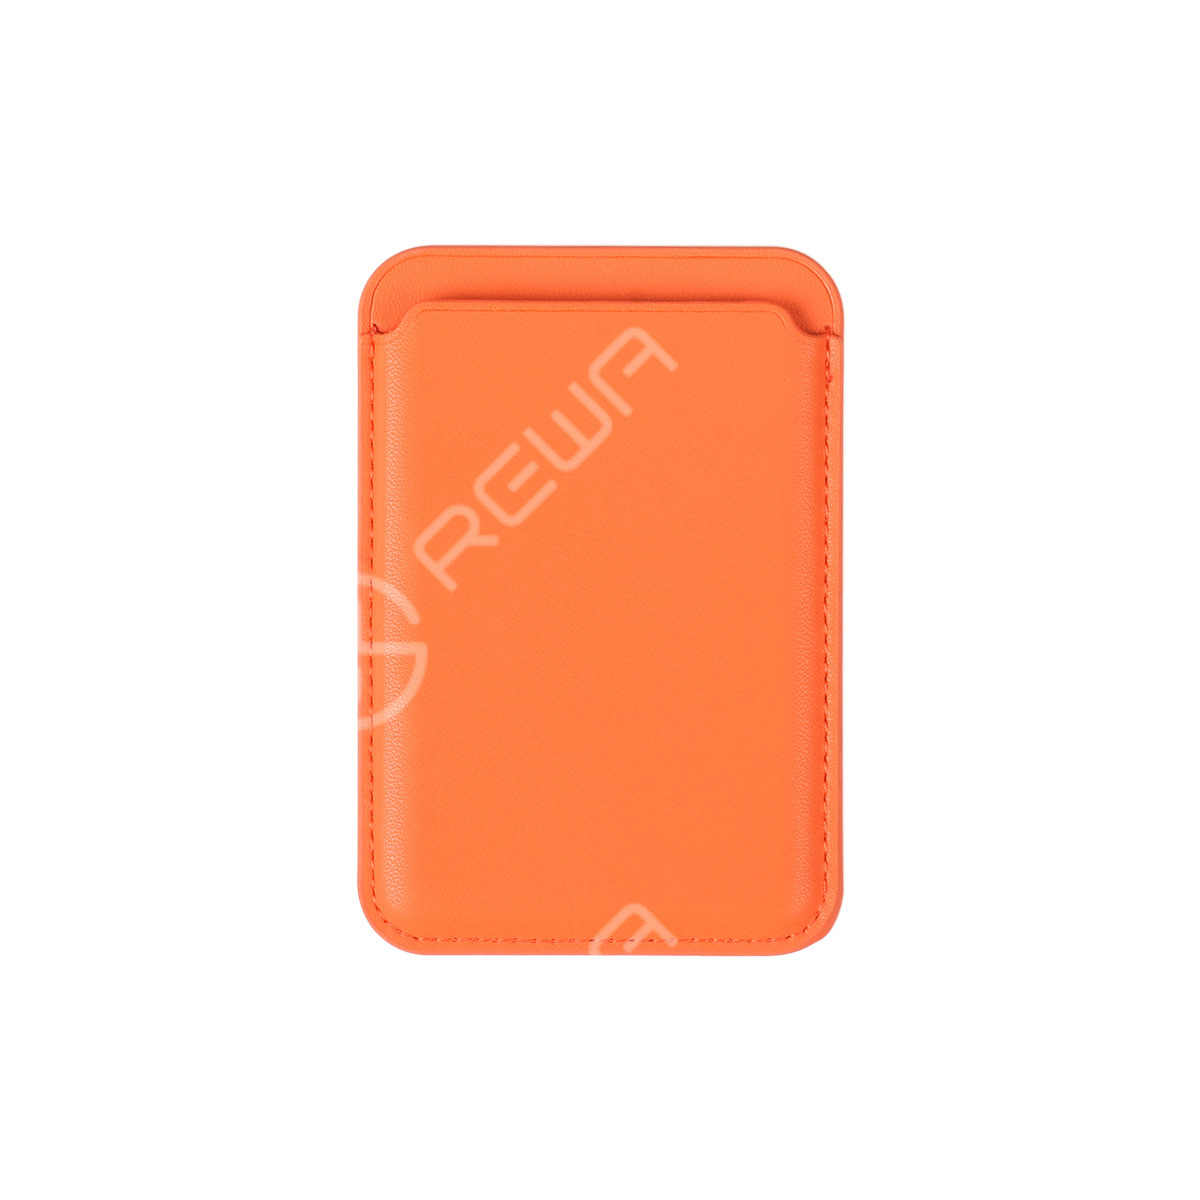 For Magsafe Magnetic Card Holder Wallet Case For iPhone 12 Series S+